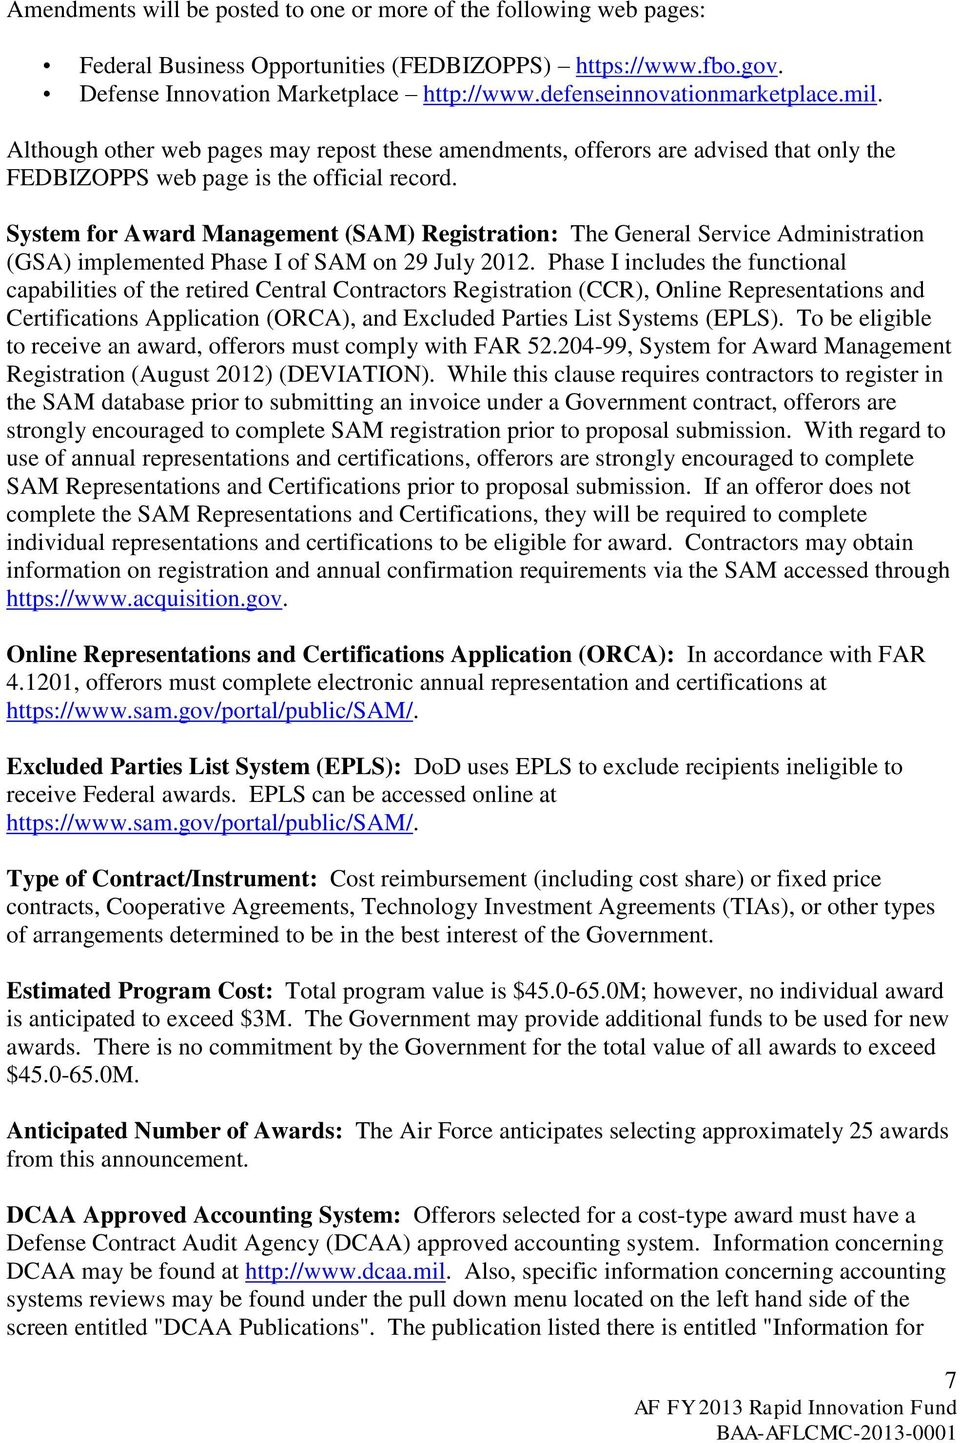 Air Force Fy 2013 Rapid Innovation Fund Broad Agency